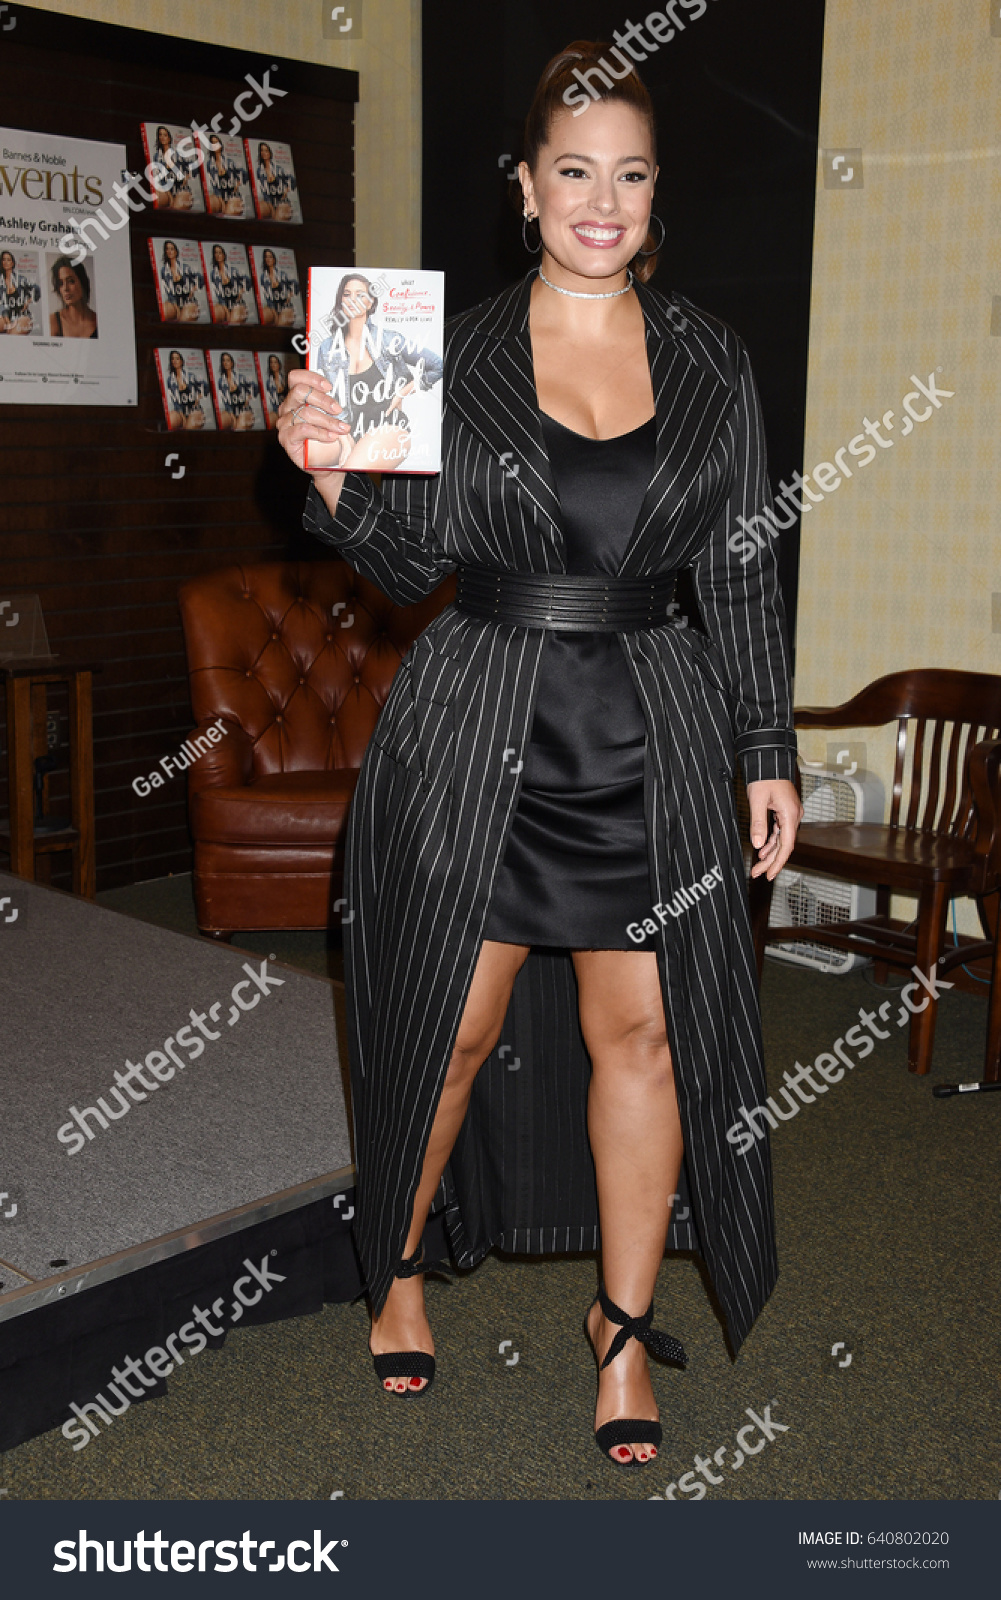 photo Ashley graham a new model book signing in new york